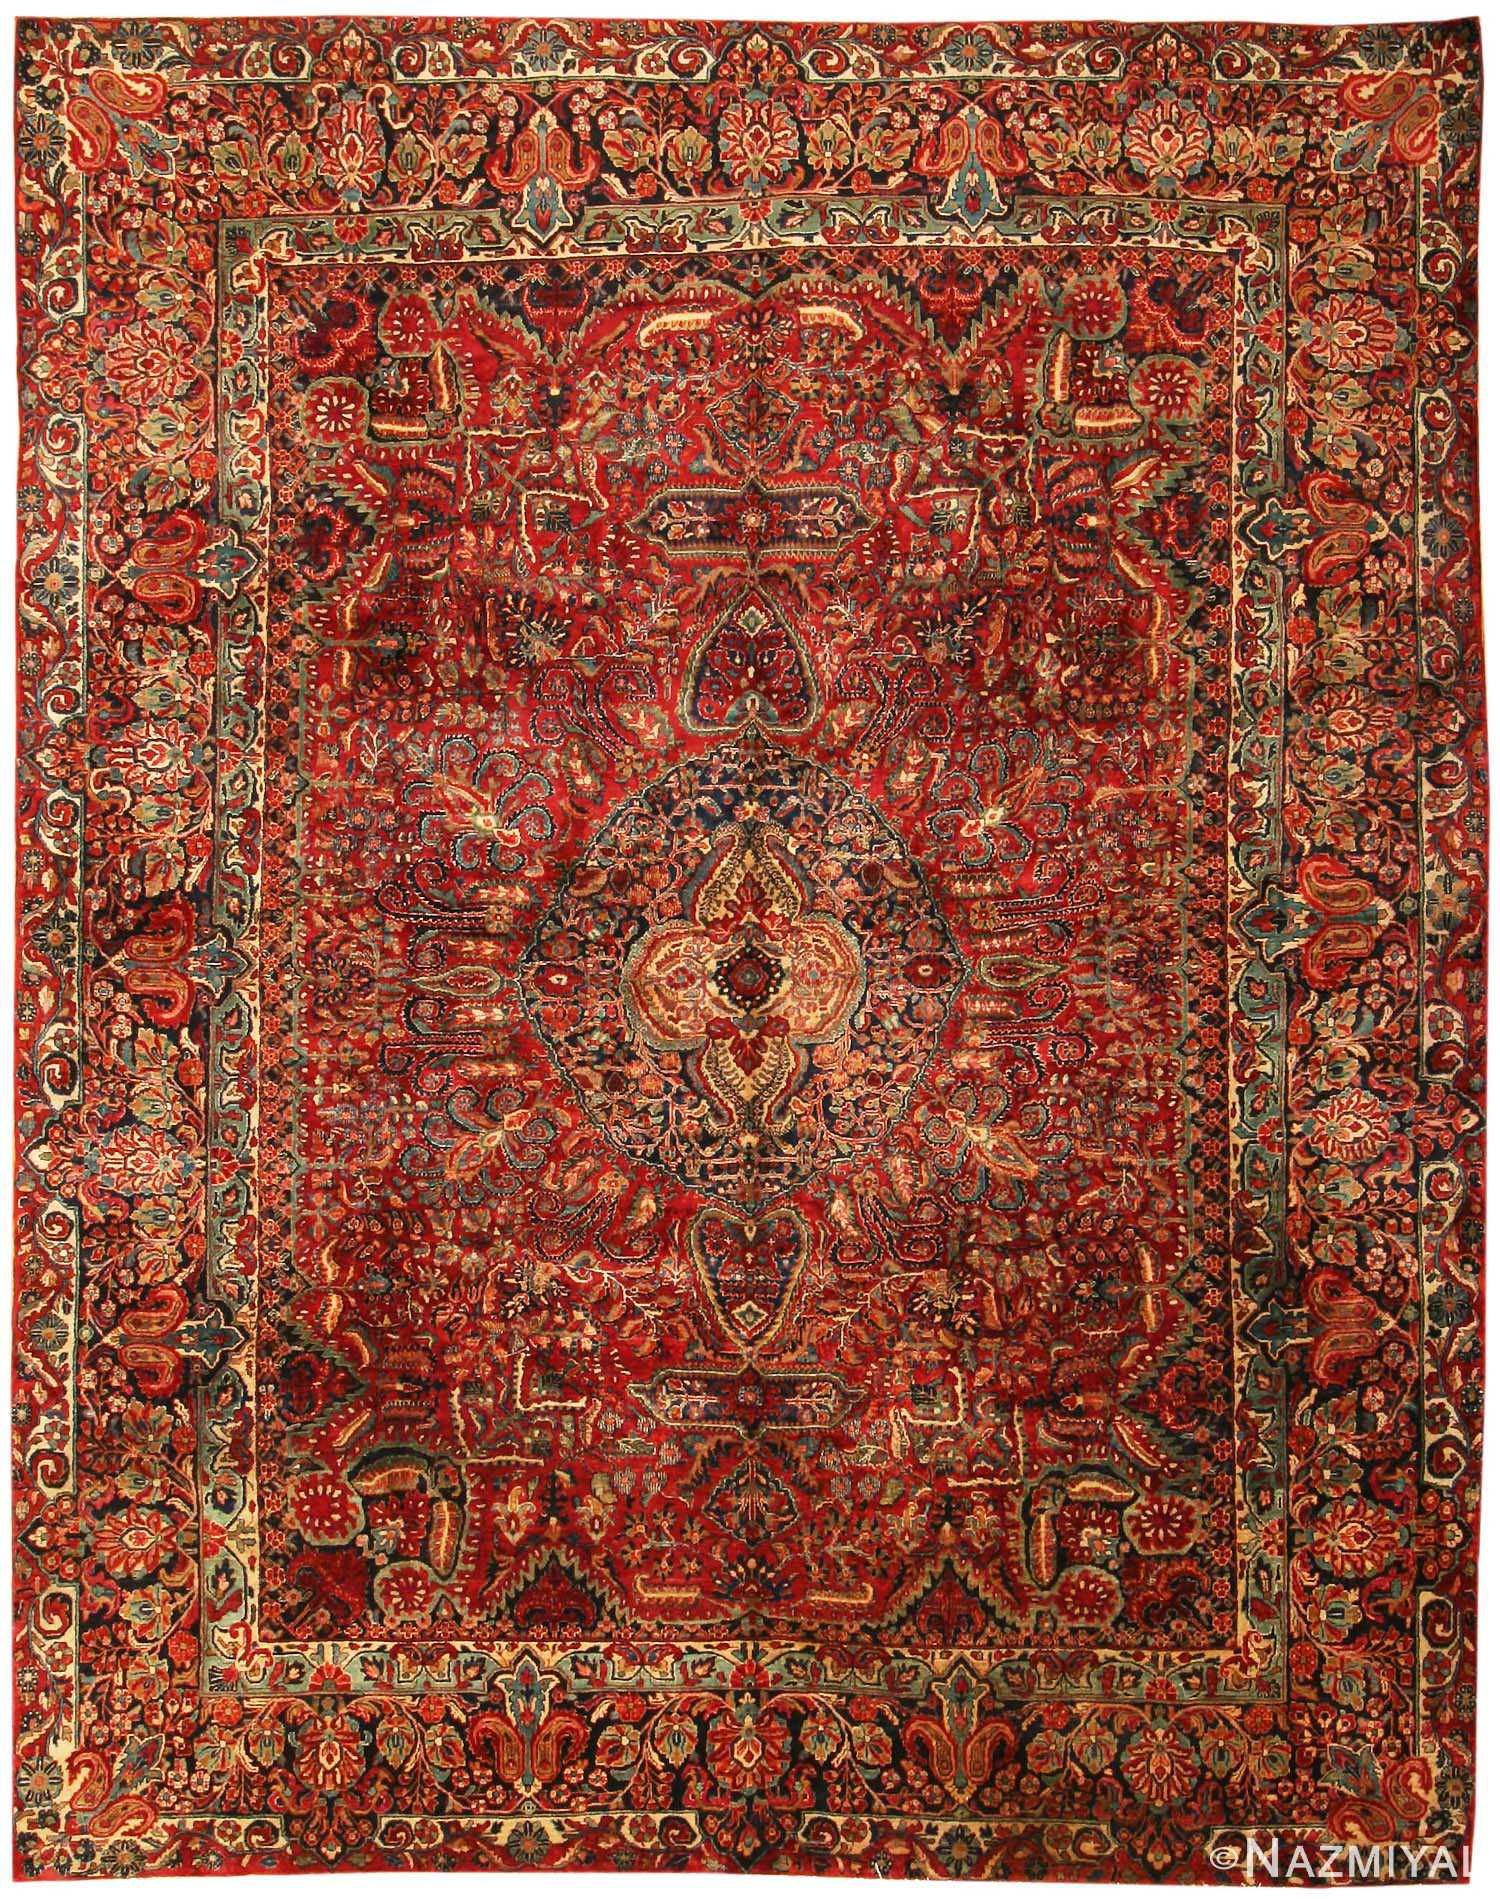 Antique Sarouk Persian Rug 43559 Nazmiyal Collection